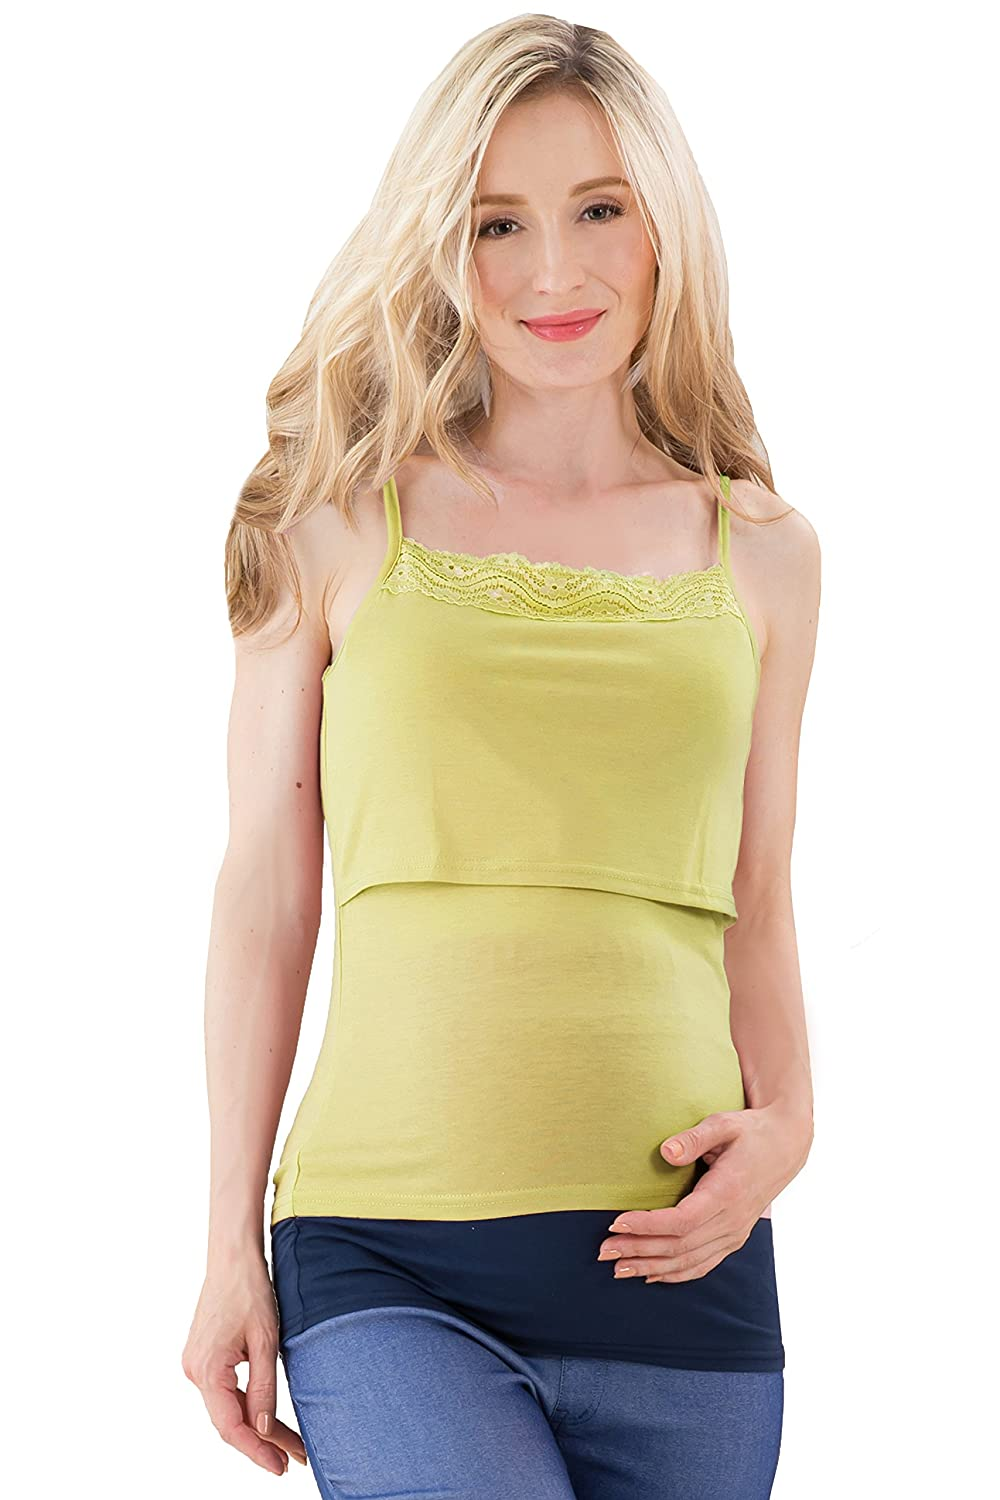 Sweet Mommy Maternity and Nursing Rayon Cotton Camisole Sweet Mommy Co. Ltd sw9346